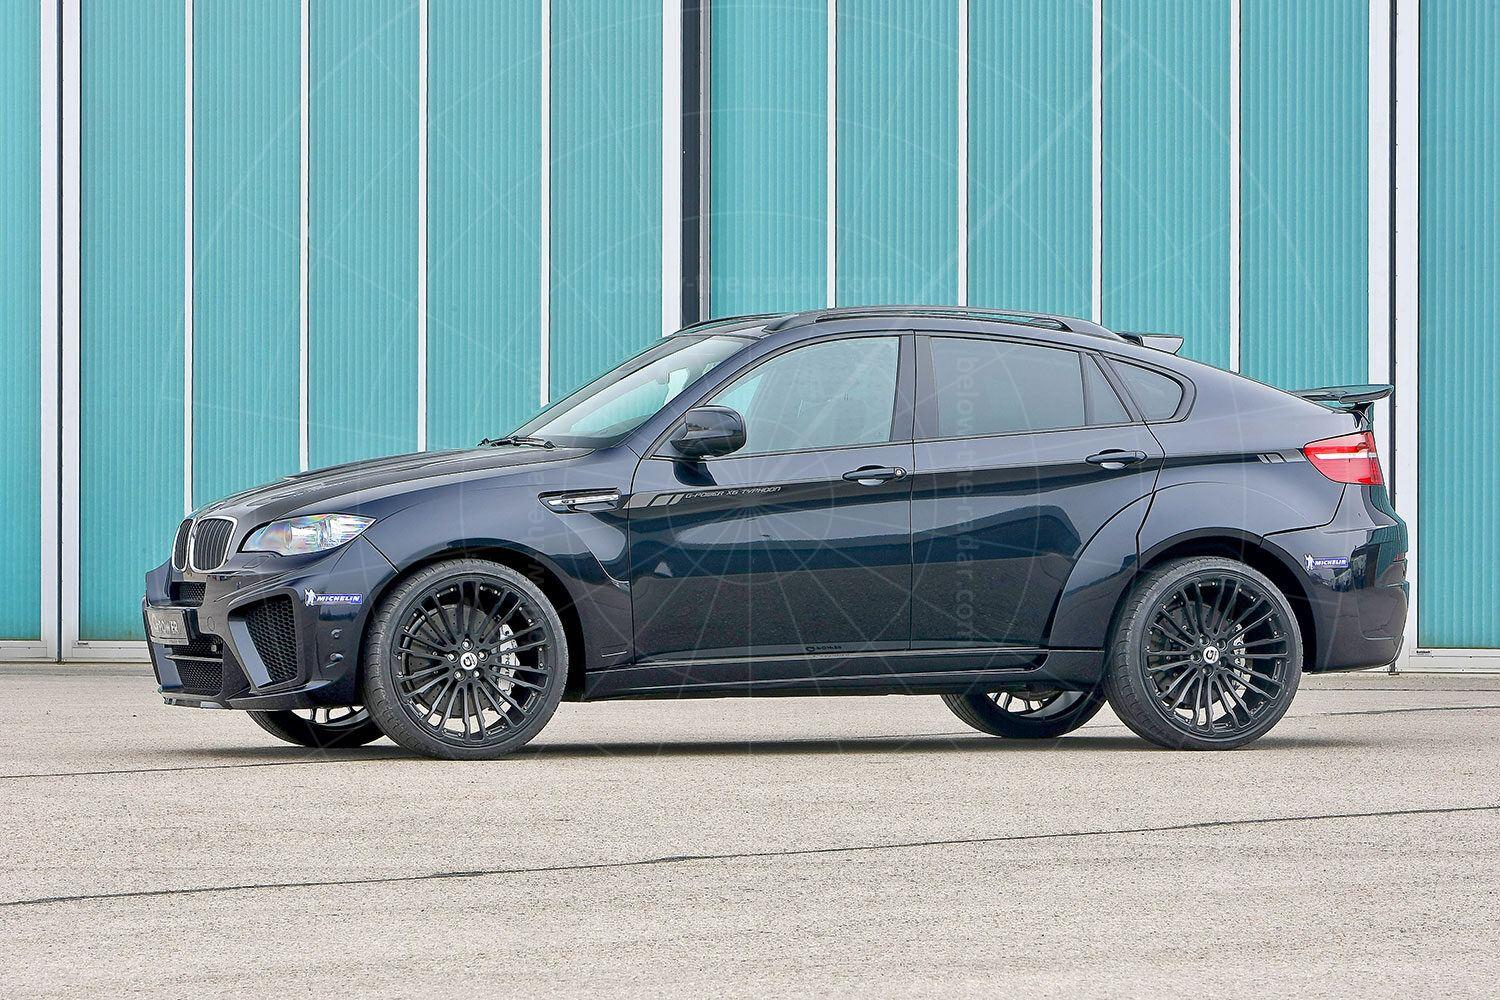 G-Power X6 M Typhoon Pic: G-Power | G-Power X6 M Typhoon